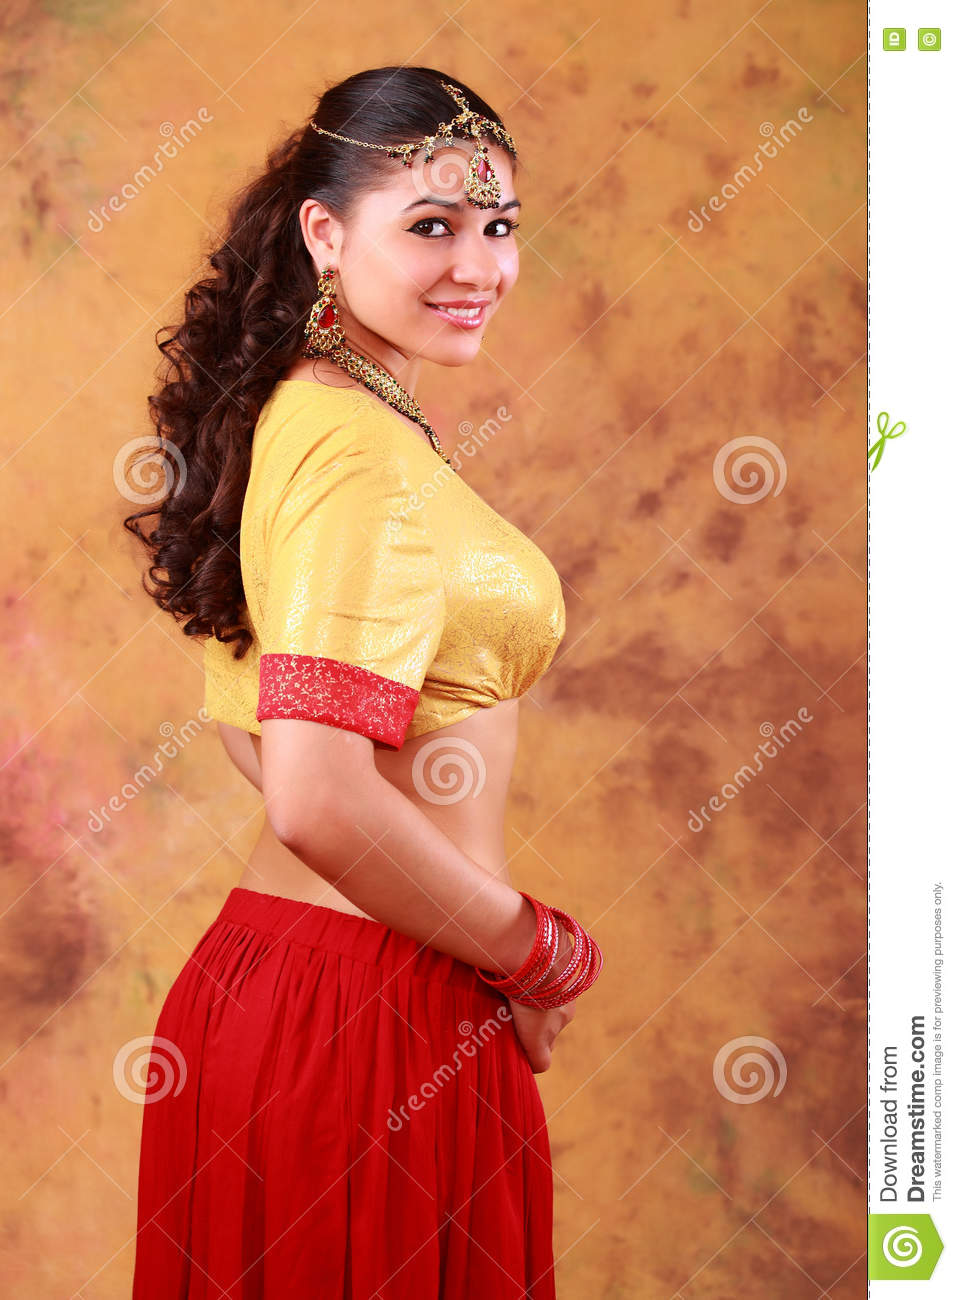 9a3fa1e496 Beautiful Indian girl in traditional dress. More similar stock images